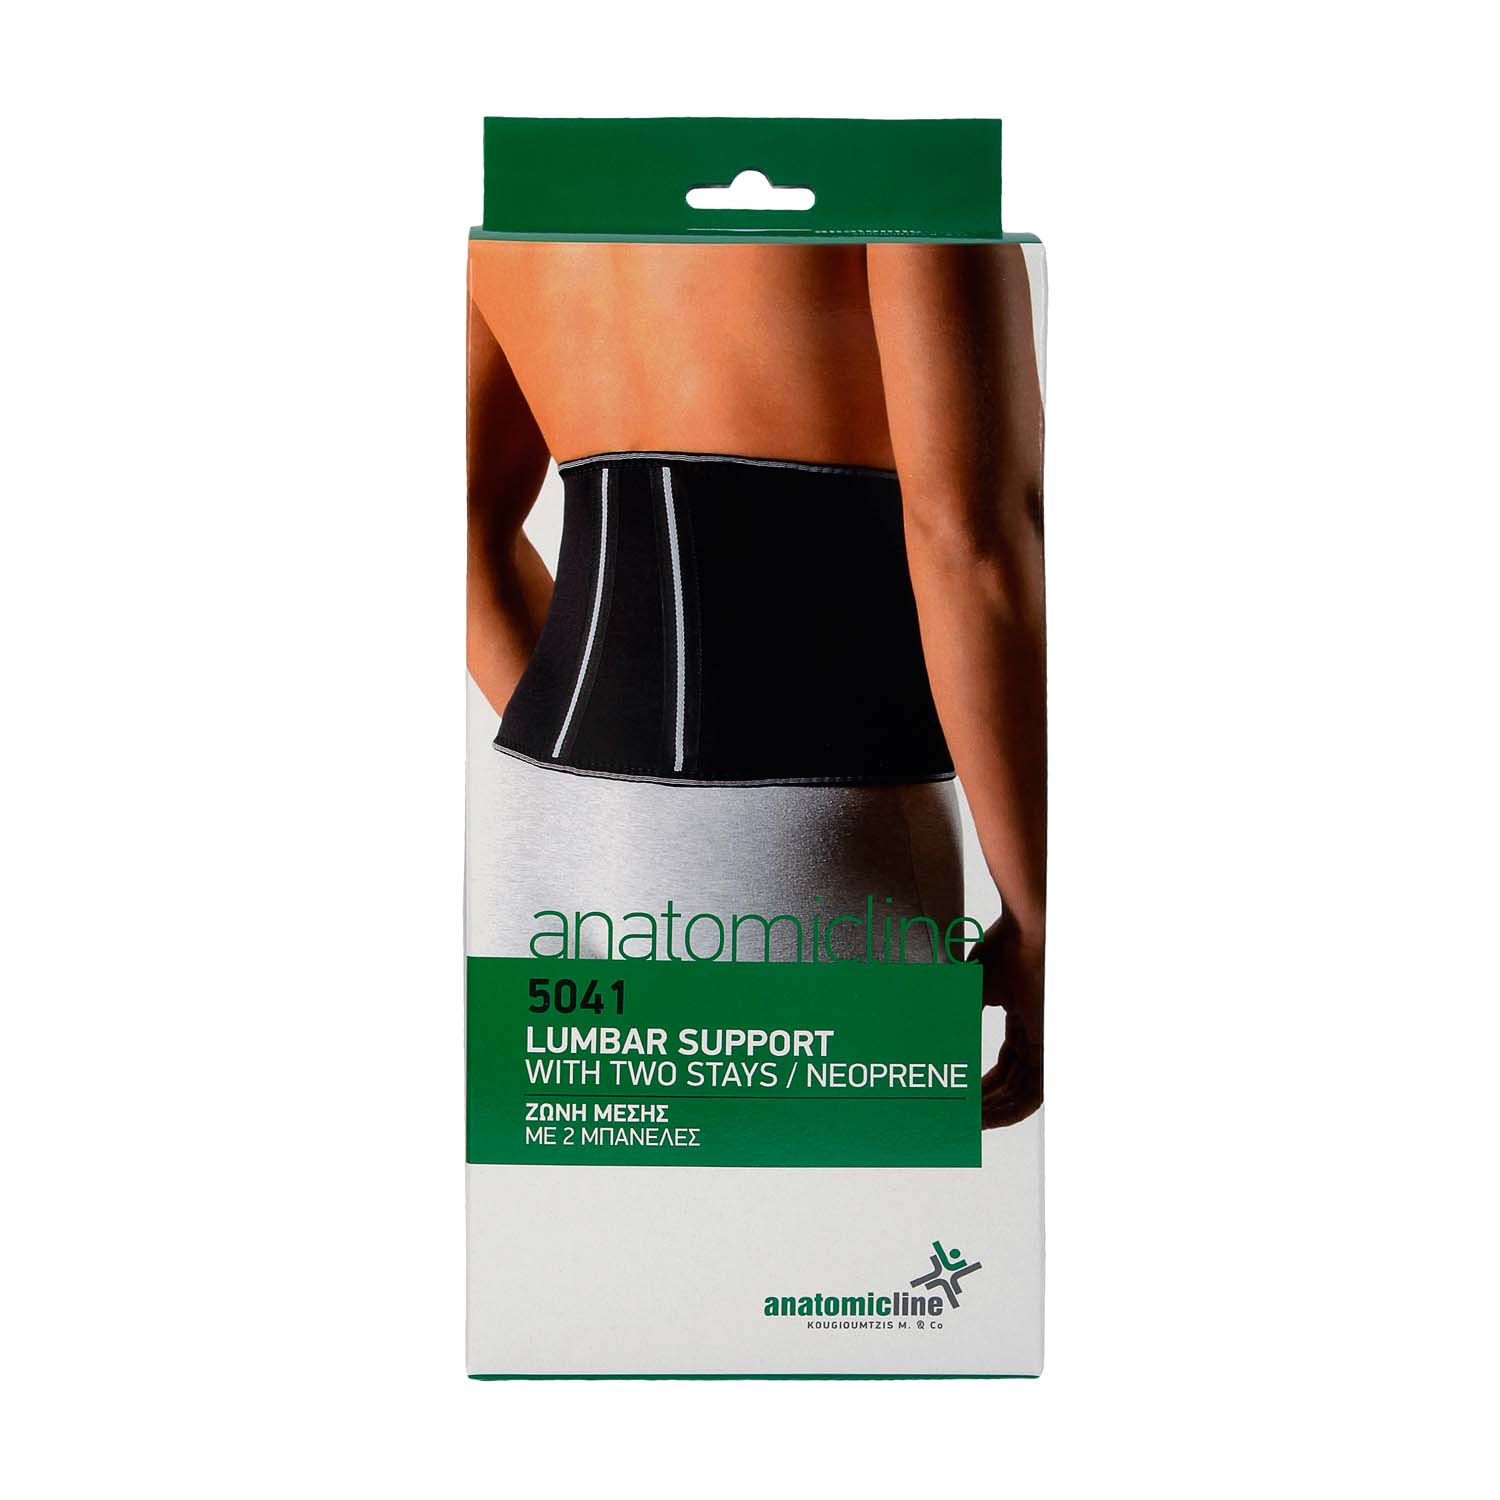 Lumbar Support with two stays - Neoprene